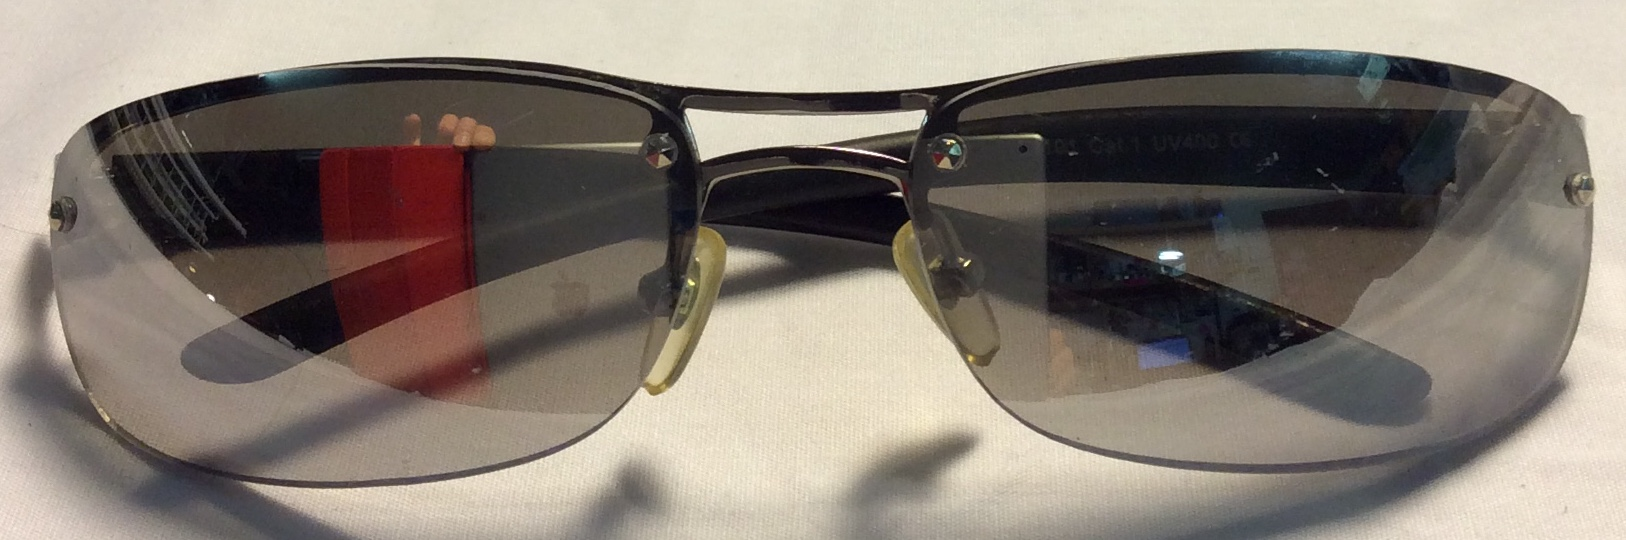 Thicker charcoal metal frames